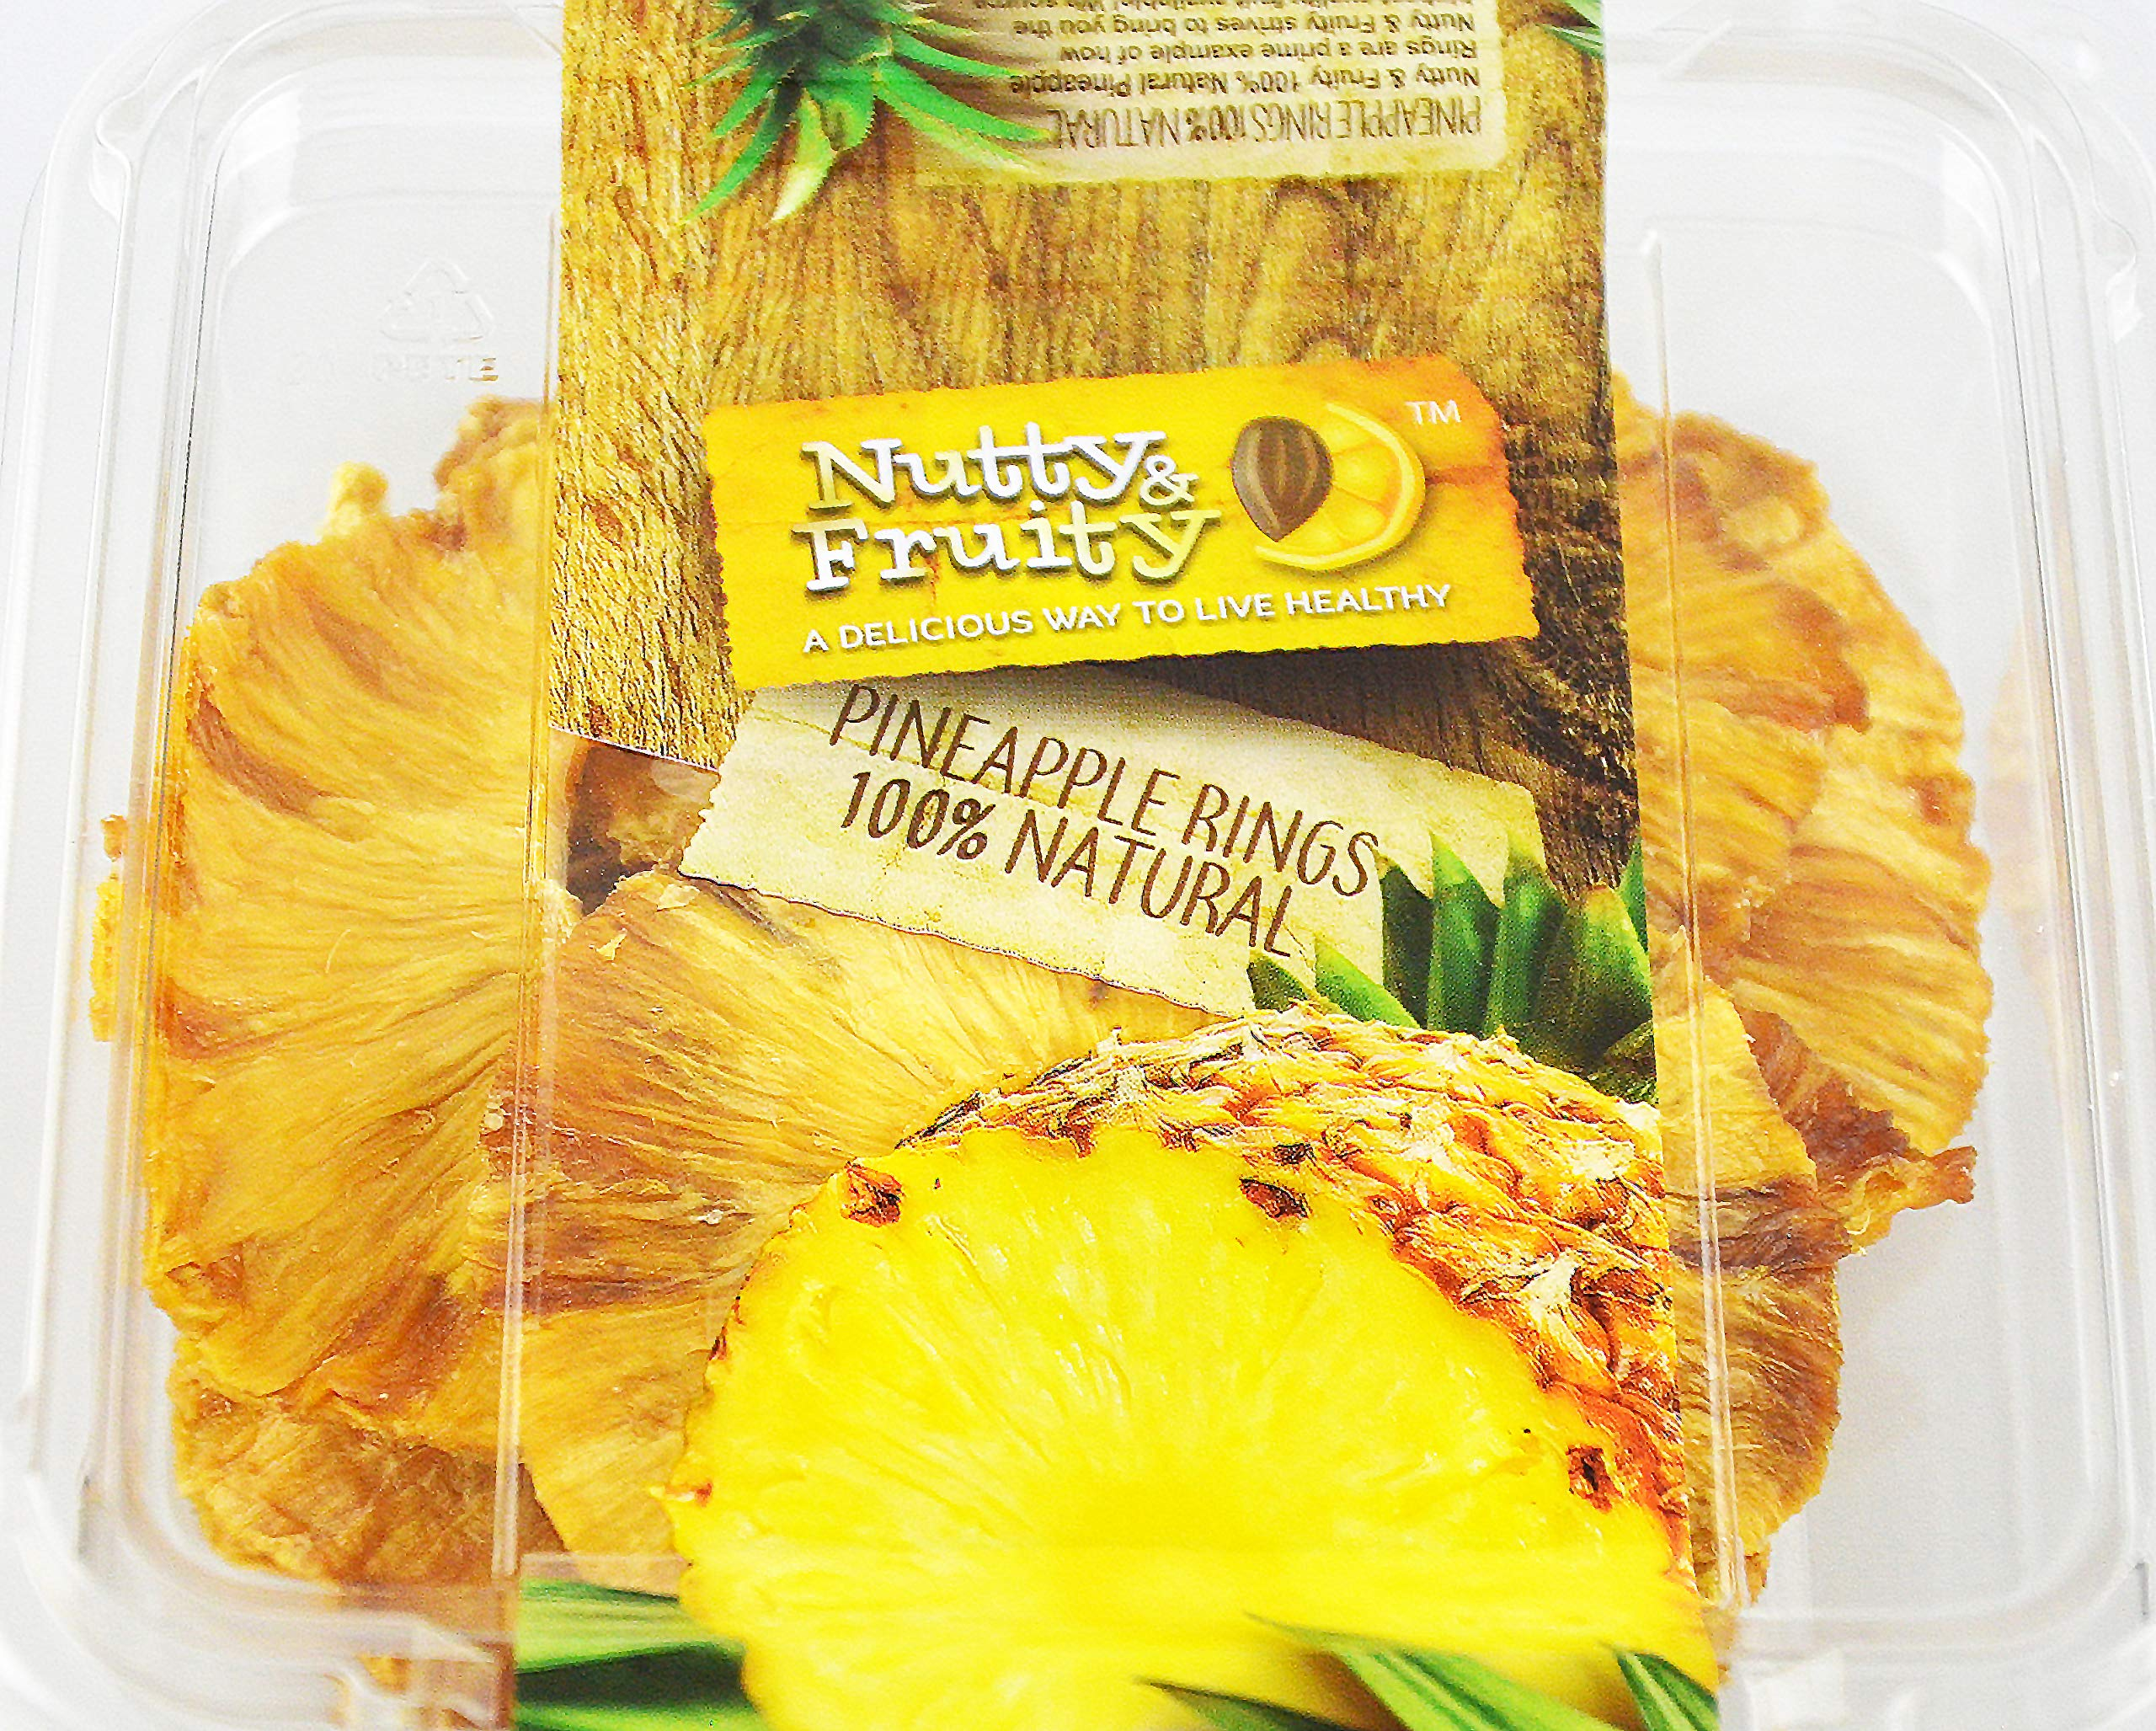 Nutty and Fruity 100% Natural Dried Pineapple Rings 4.5 Ounces